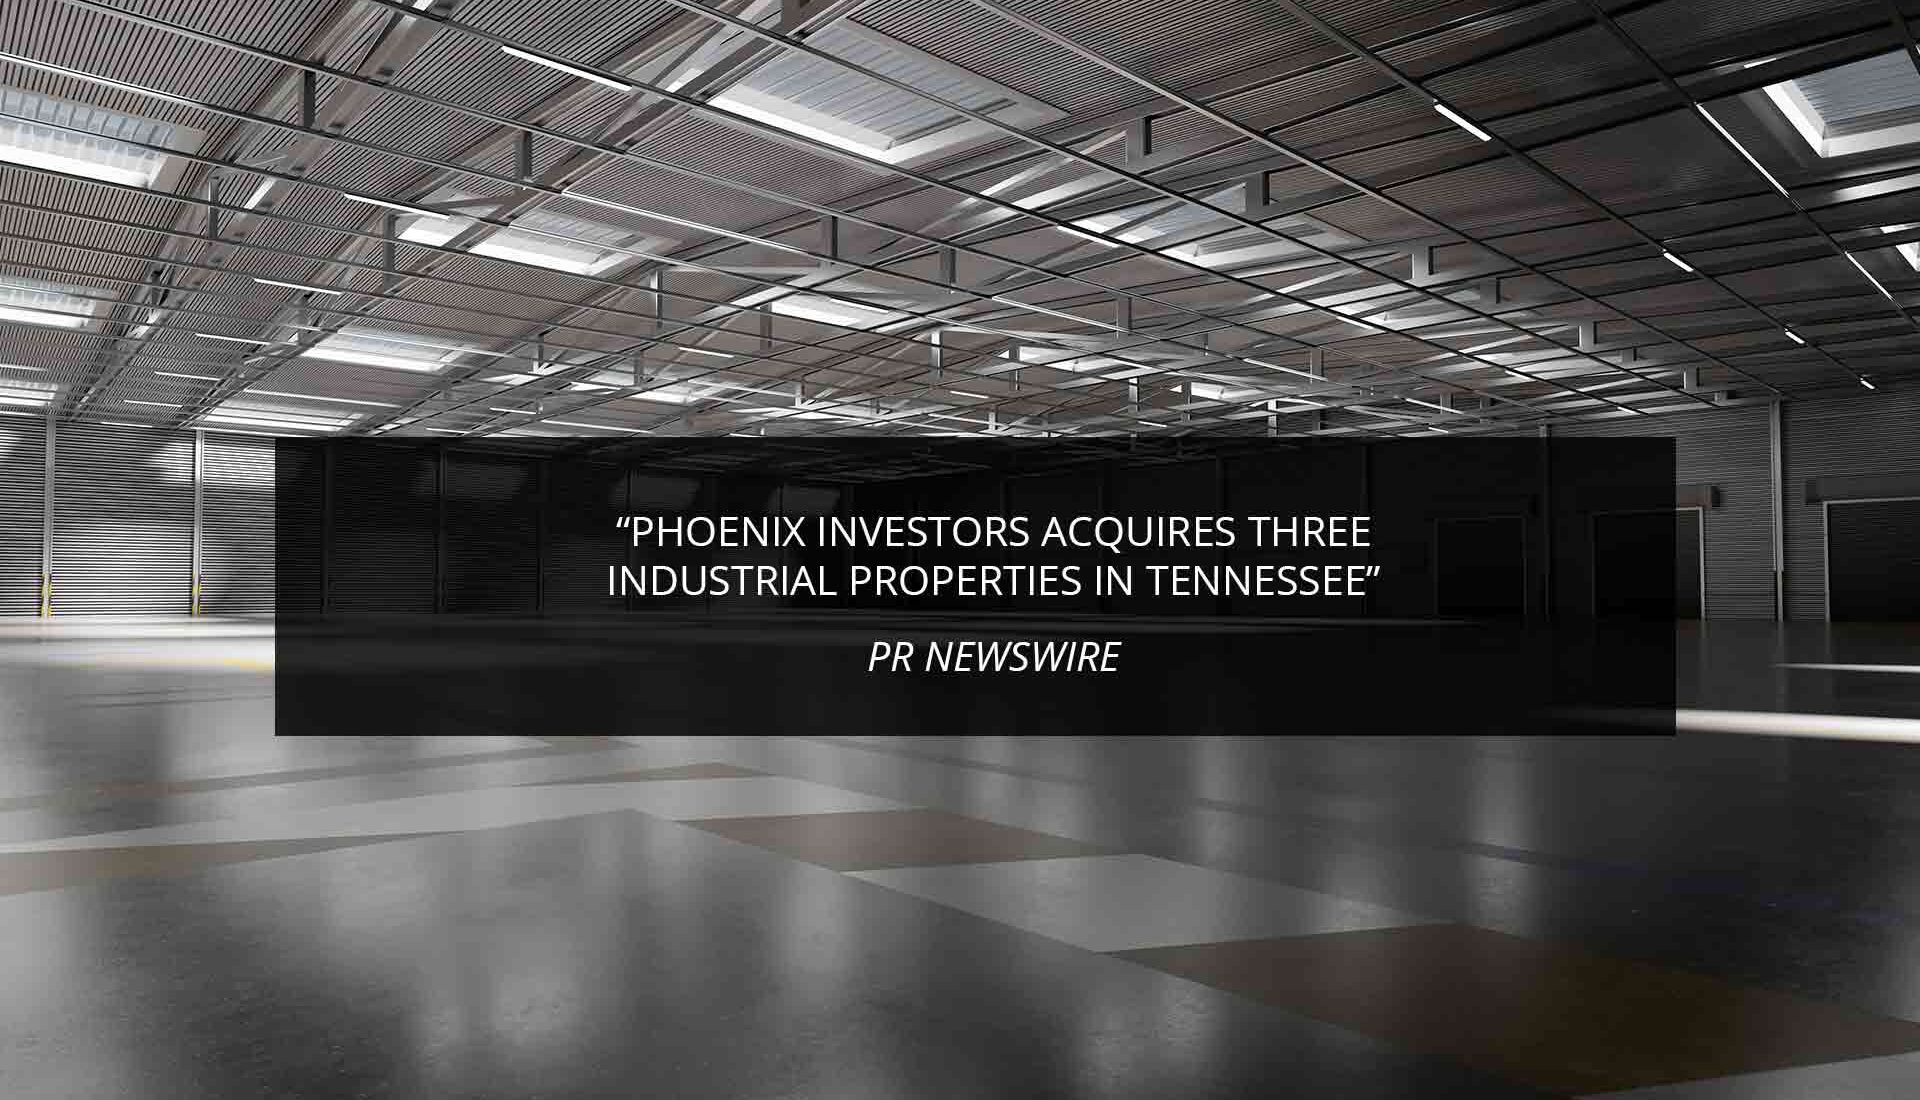 Phoenix Investors Acquires Three Industrial Properties In Tennessee